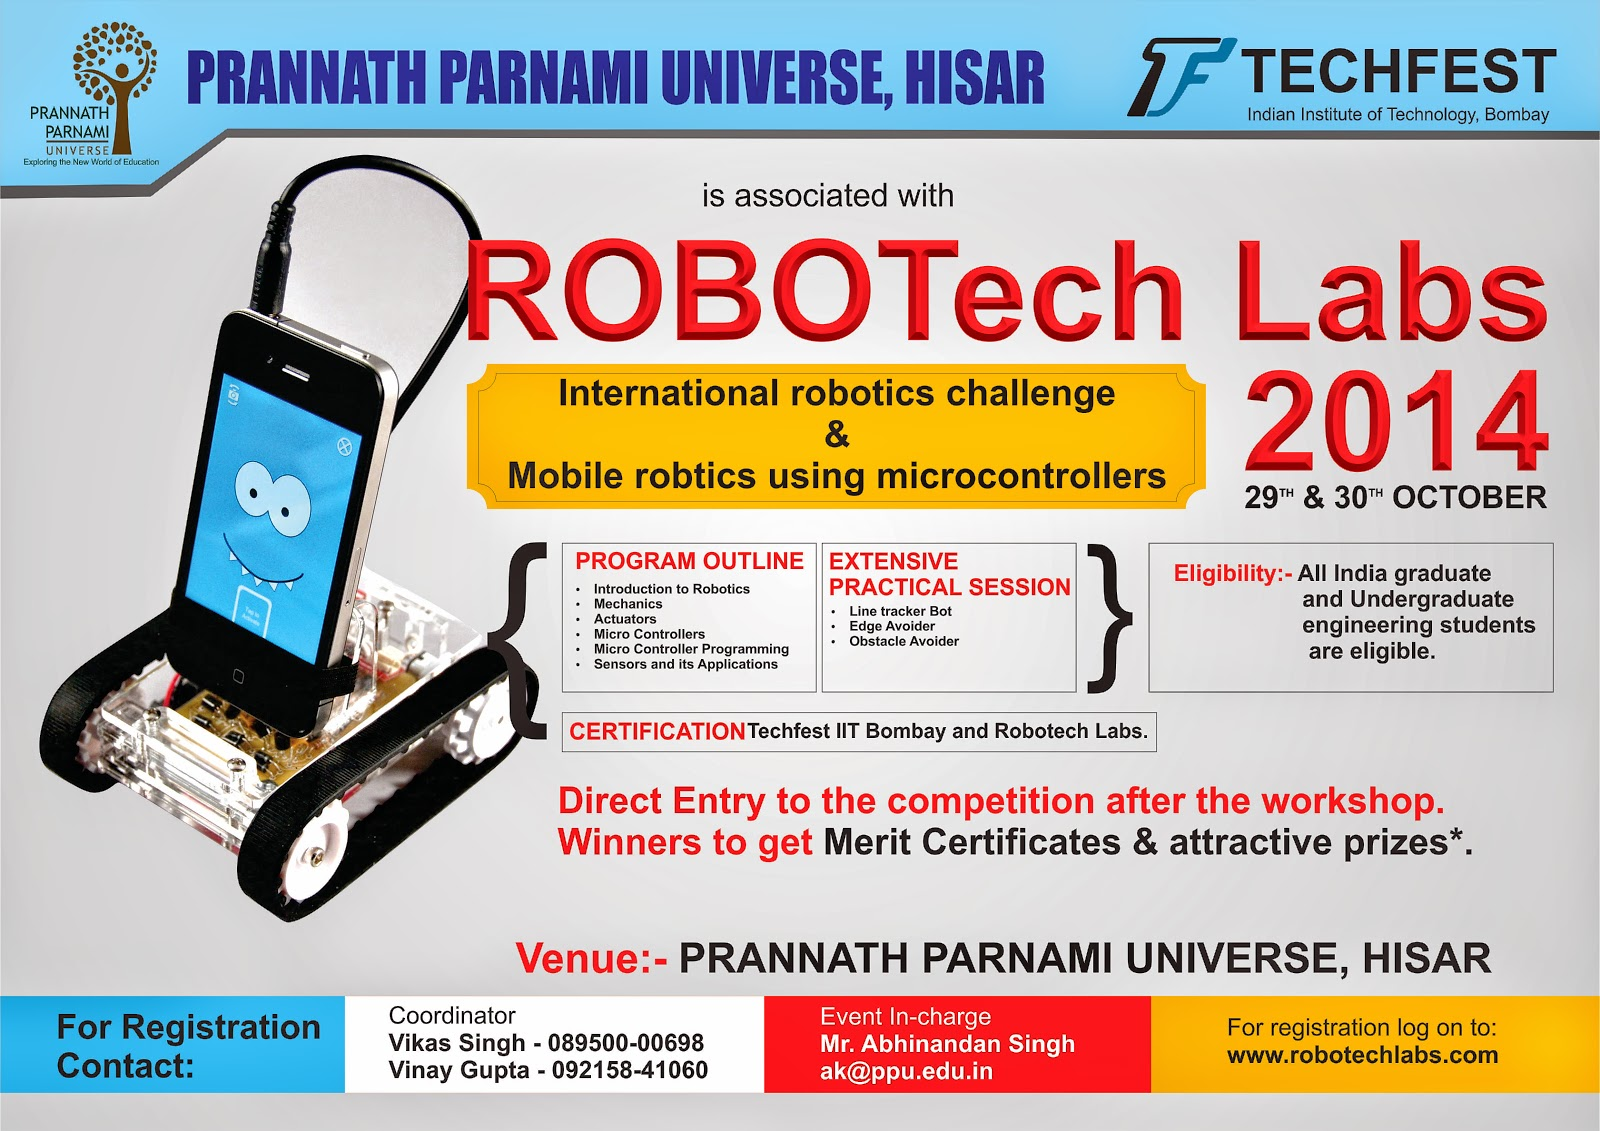 poster design ideas techfest iit bombay poster design print posters online cool inspiring poster templates illustration - Poster Design Ideas